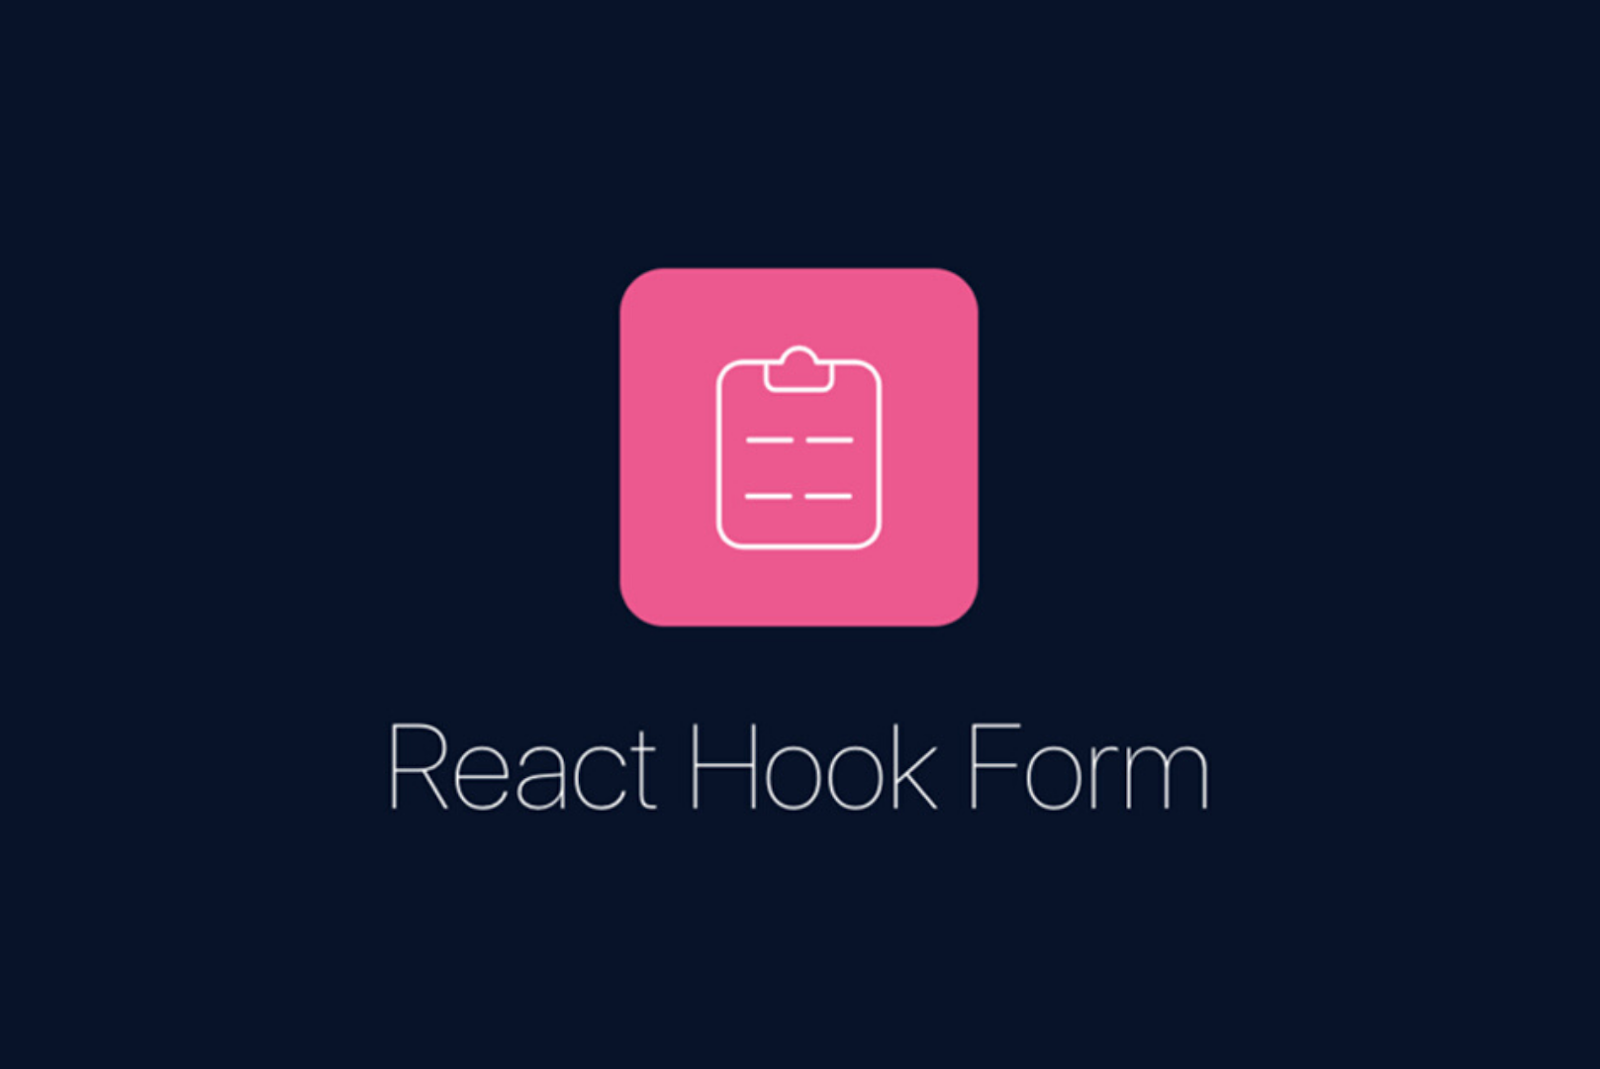 React Hook Form React Libraries 2020